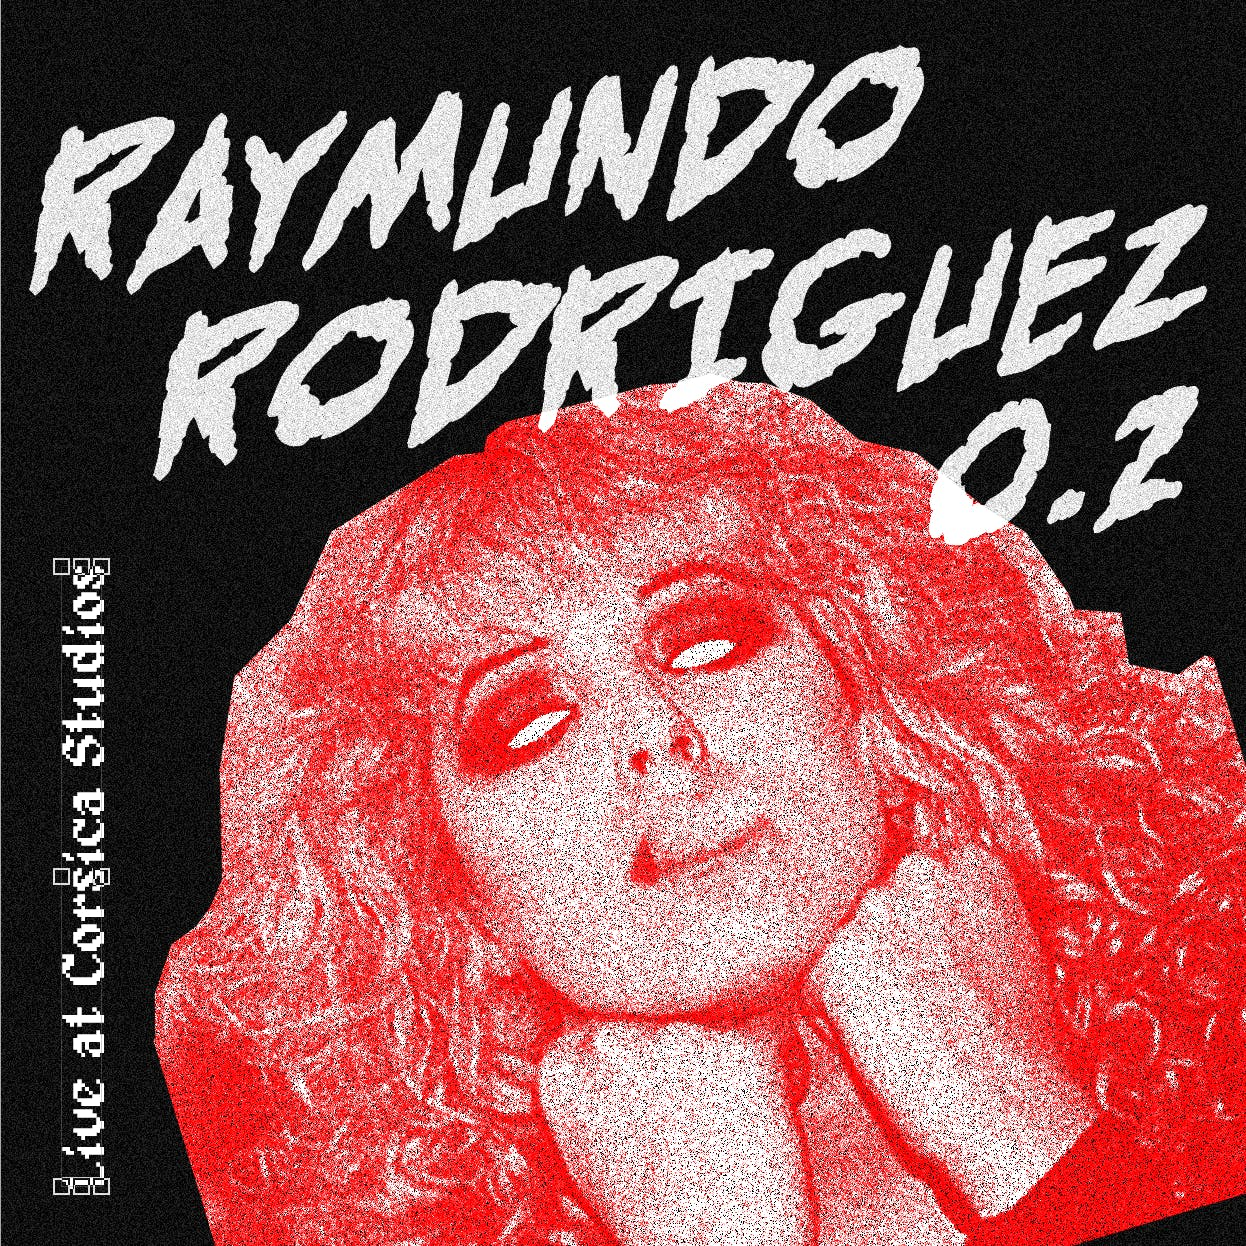 Recording: Listen to Raymundo Rodriguez slowly breaking the 6am crowd at the Jaded Rave Edition.